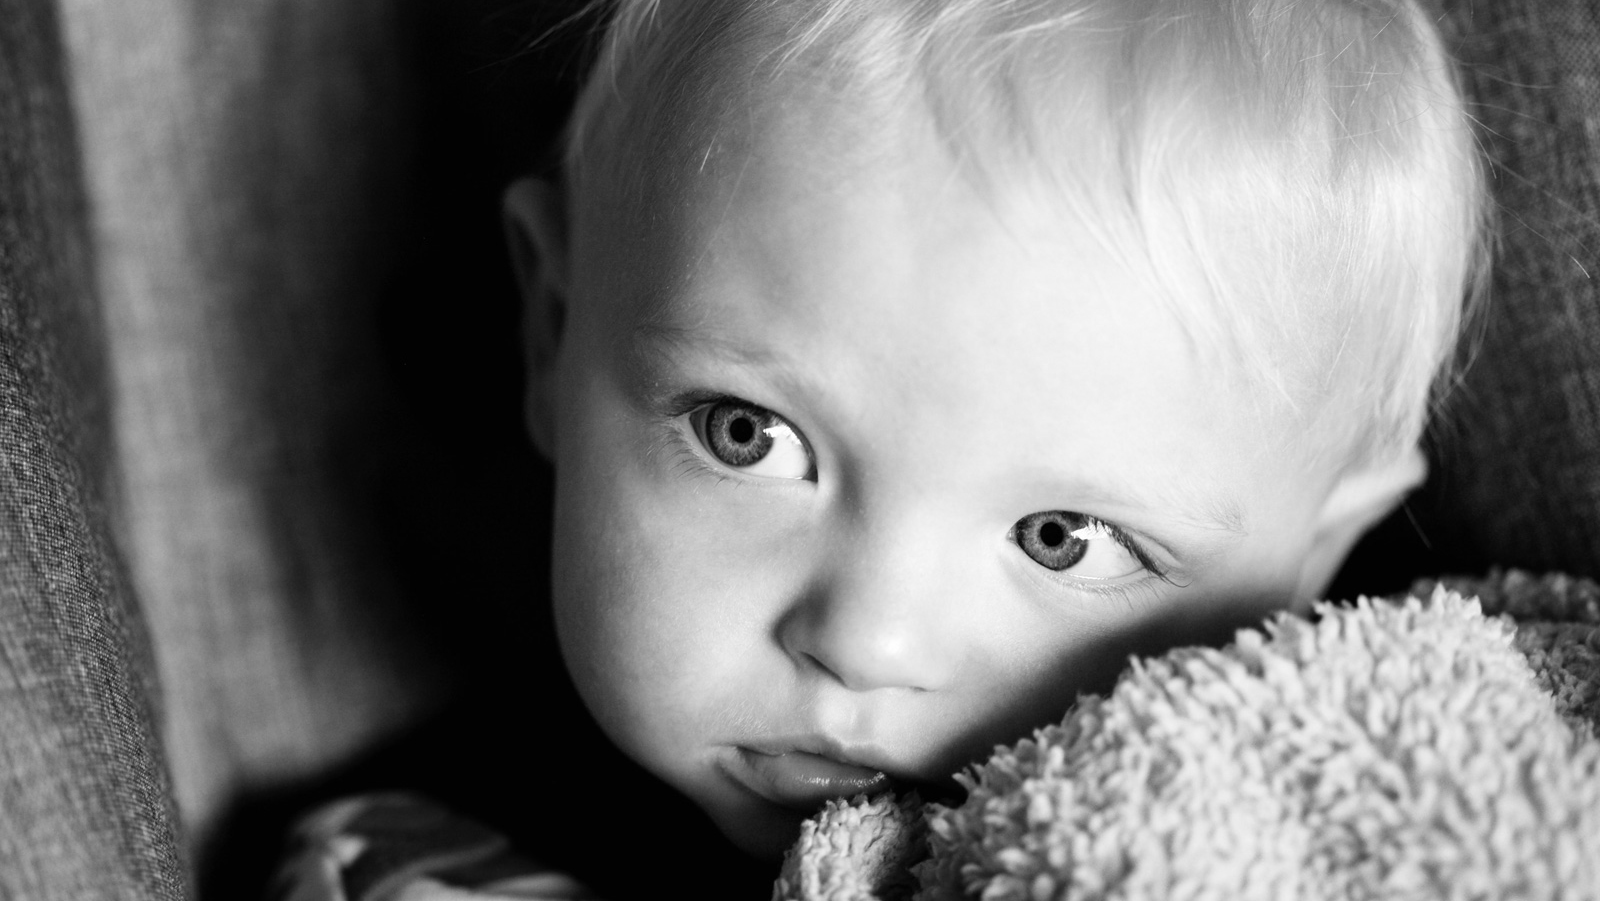 child's face in black and white